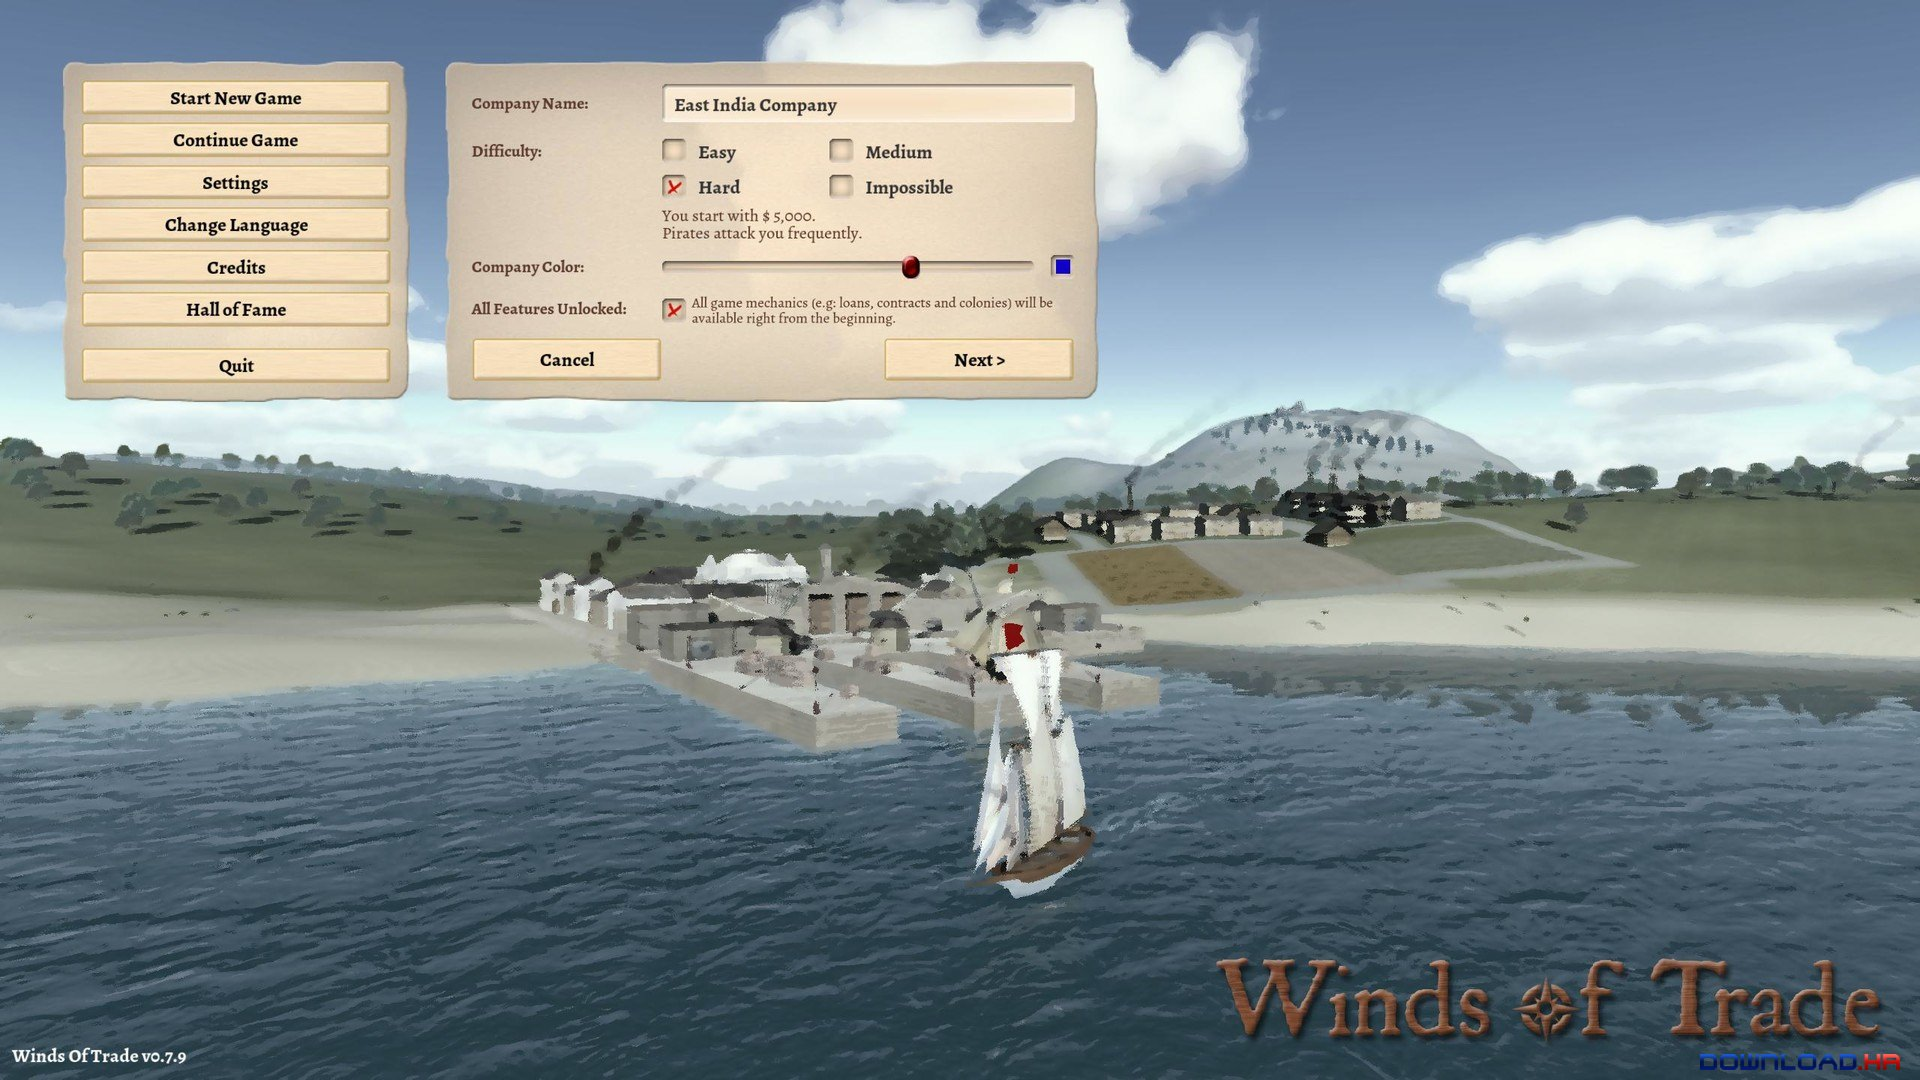 Winds Of Trade  Featured Image for Version